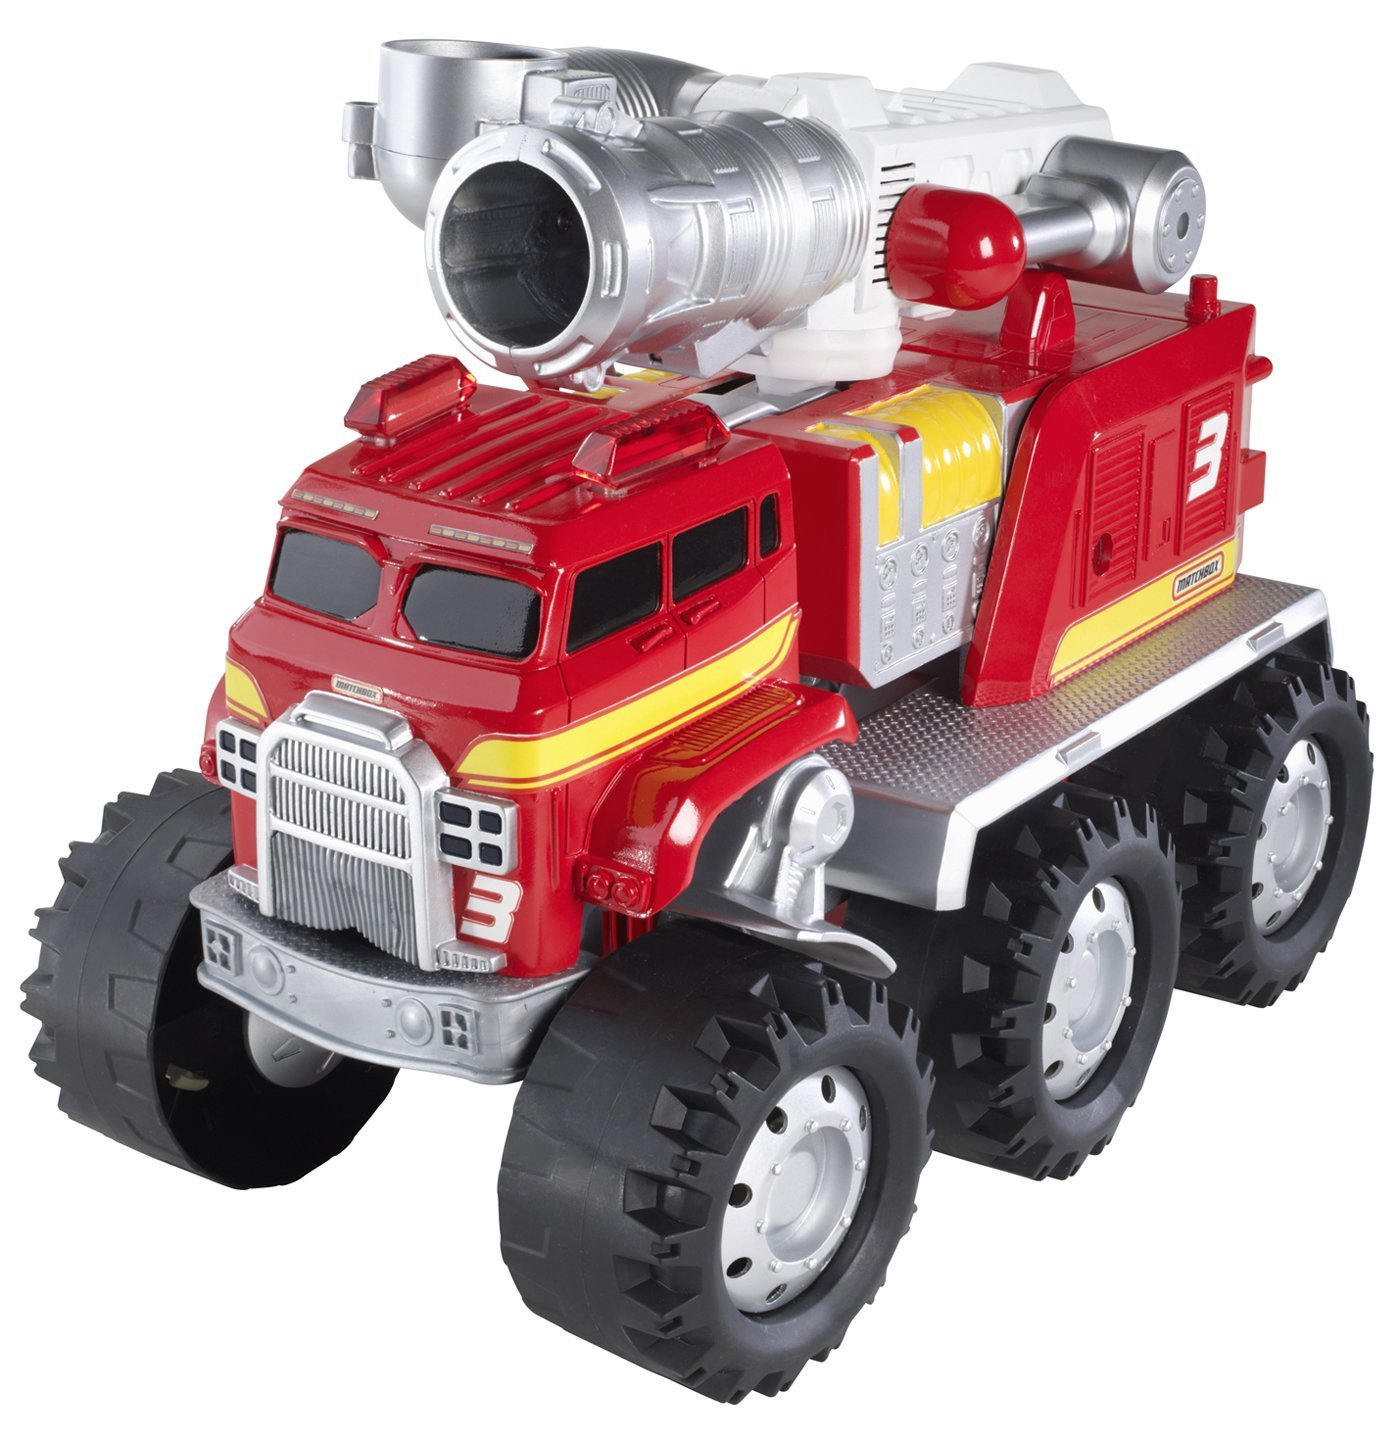 Matchbox Smokey The Fire Truck by